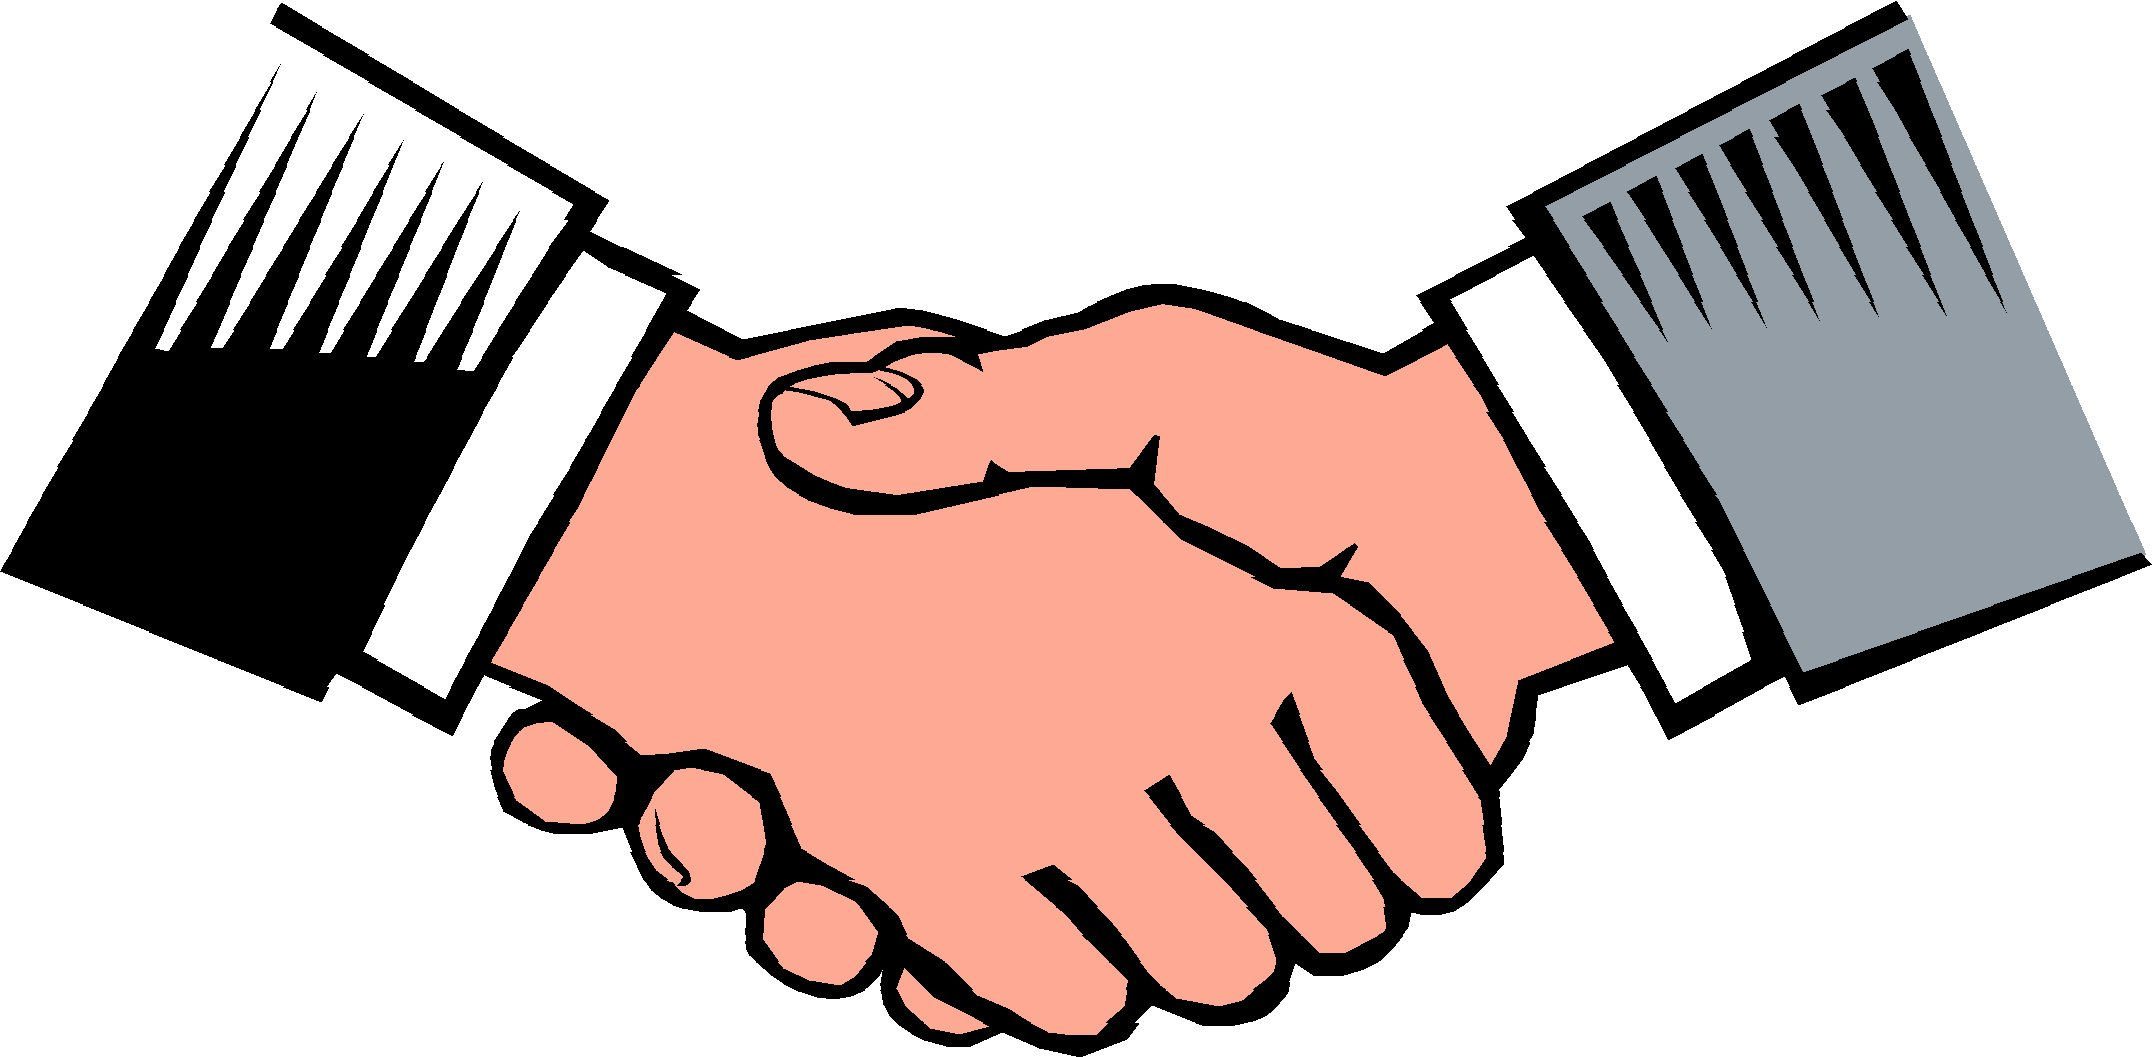 Logo clipart shake hand Art Free Download Free Picture